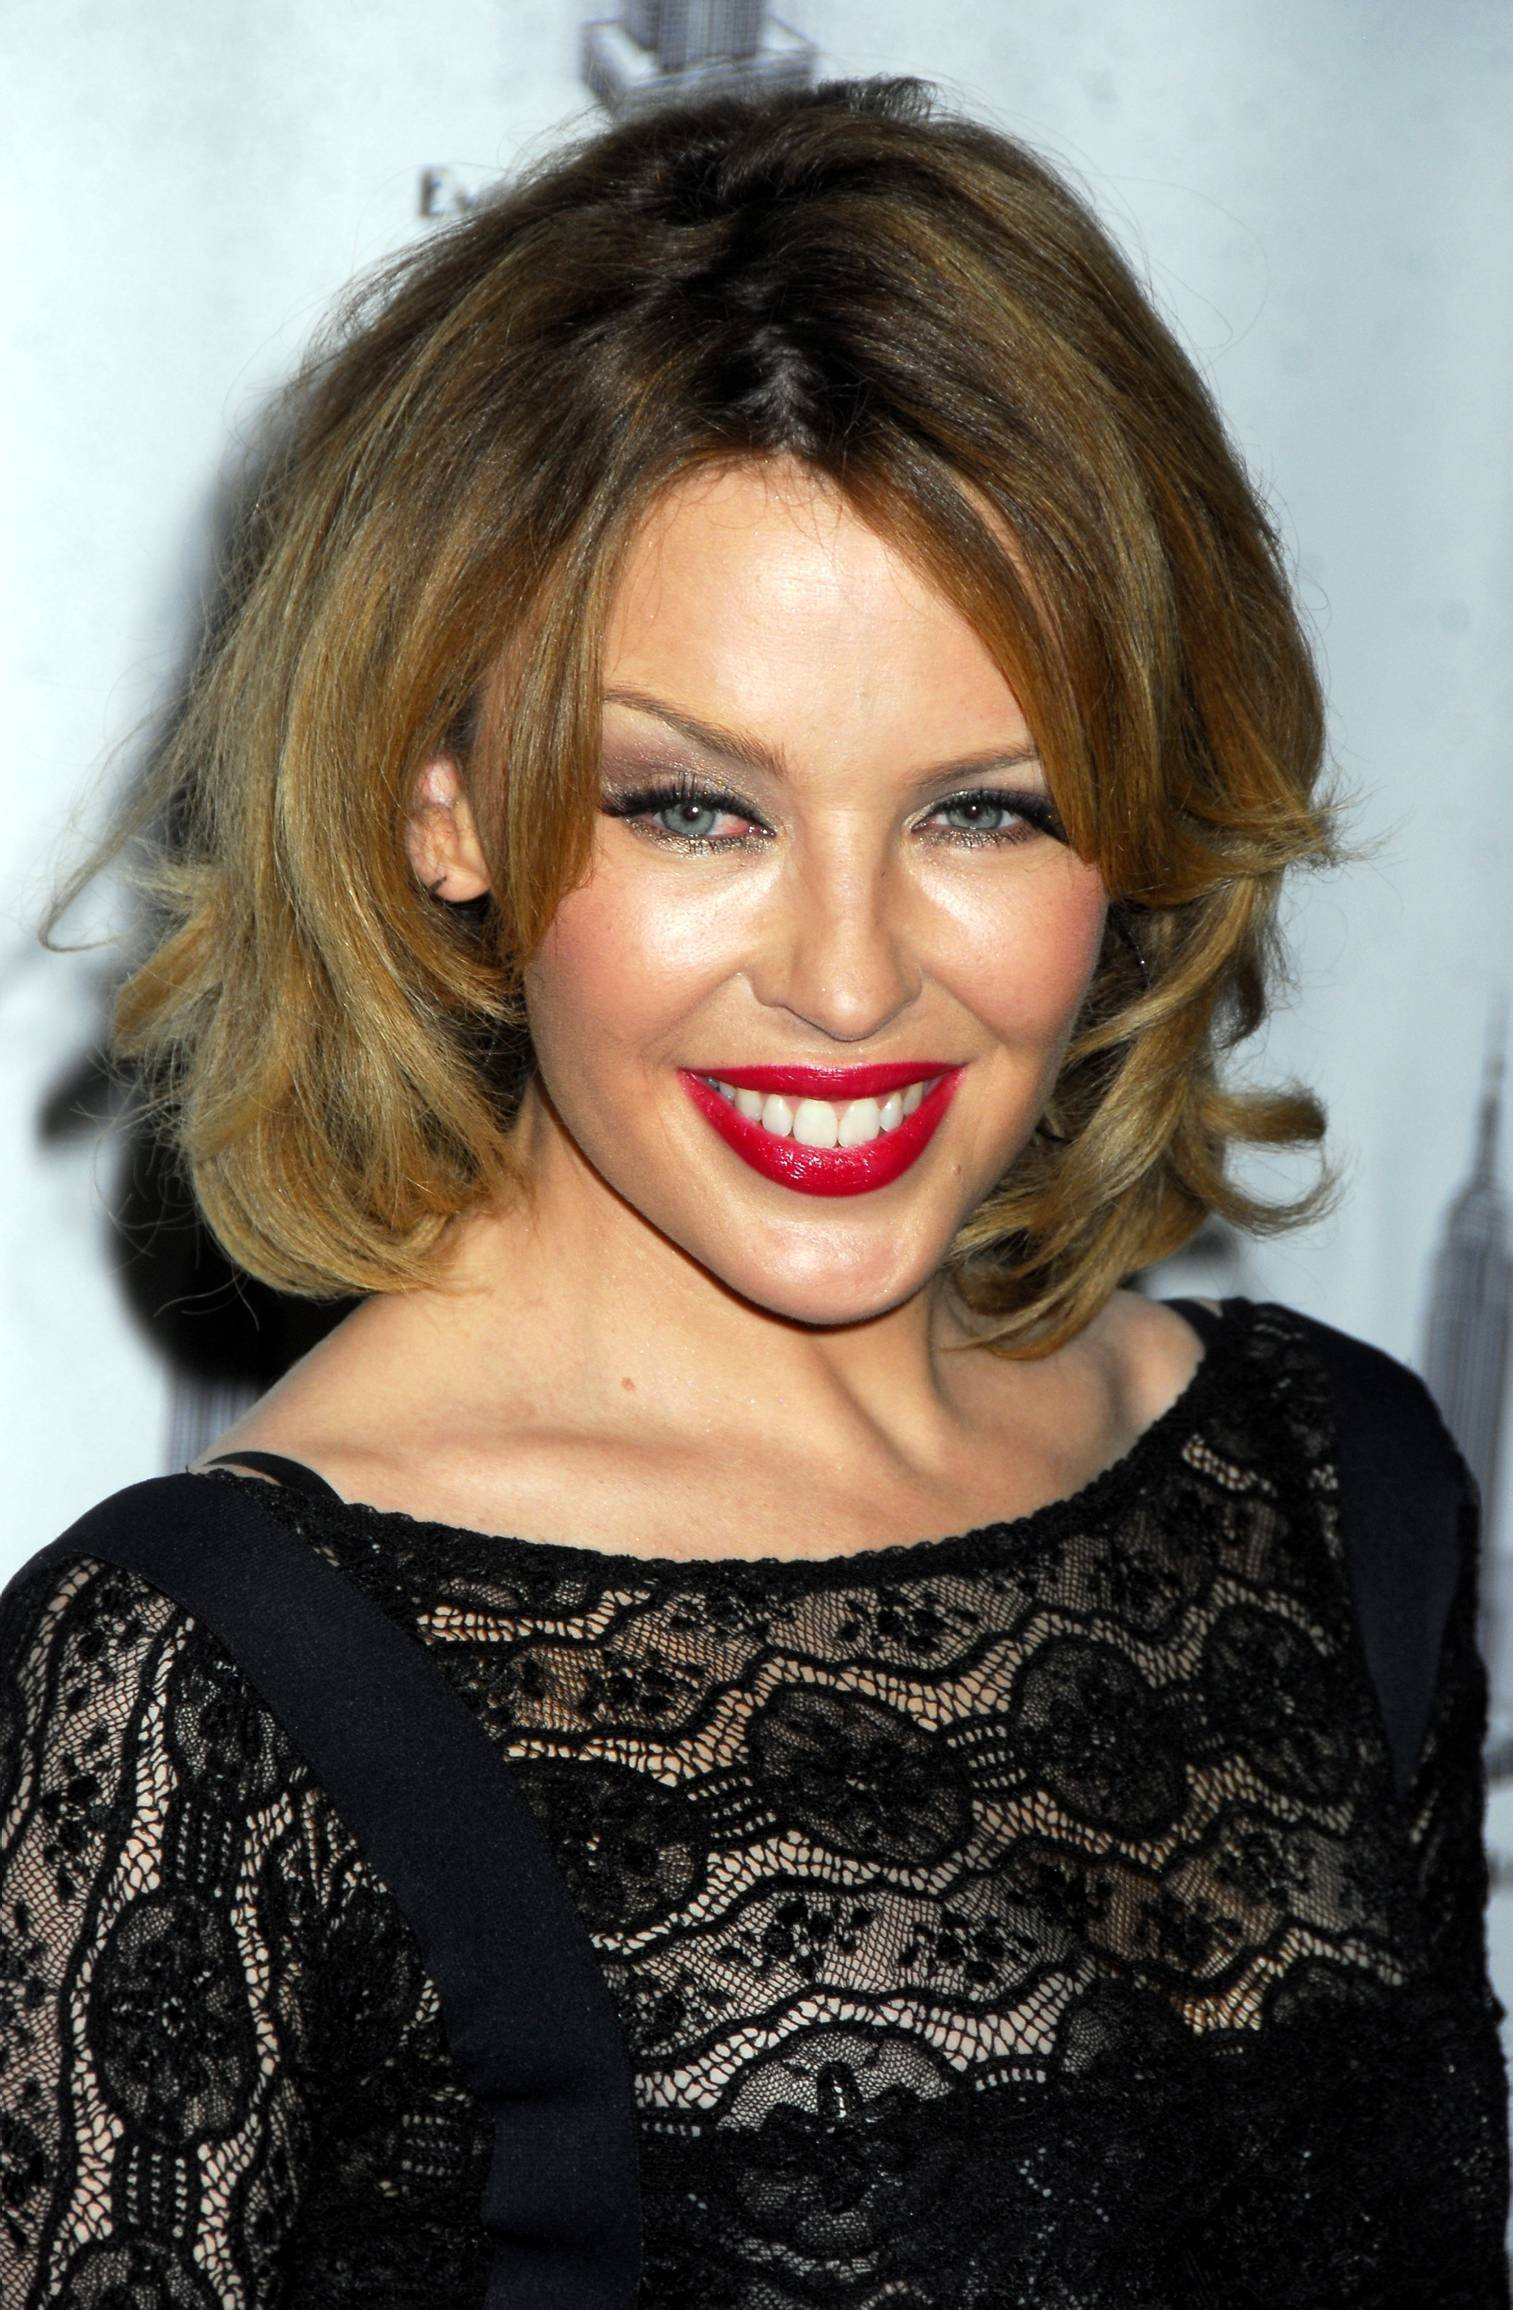 25358_Celebutopia-Kylie_Minogue_lights_The_Empire_State_Building-12_122_519lo.jpg